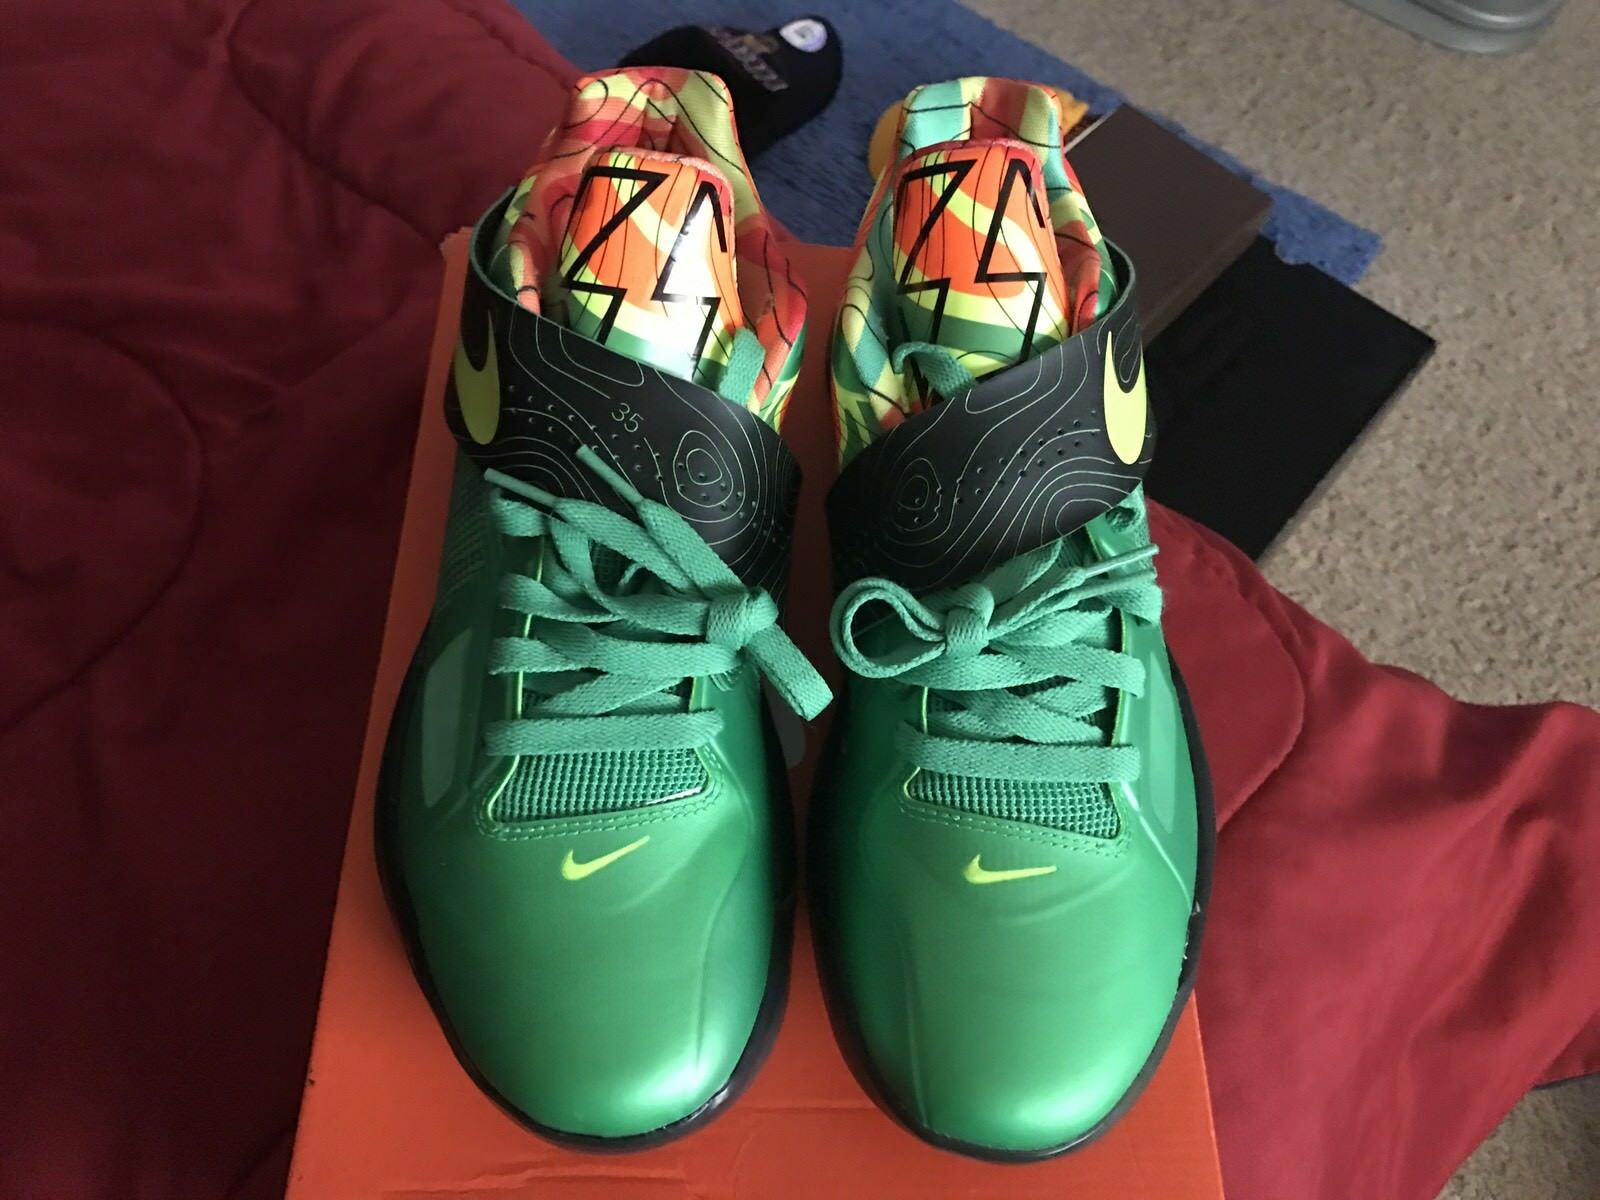 best loved 72459 860fa Nike KD KD KD IV 4 Weatherman.Nike basketball.Kevin Durant.9.5 El último  descuento zapatos para hombres y mujeres 85d7a5